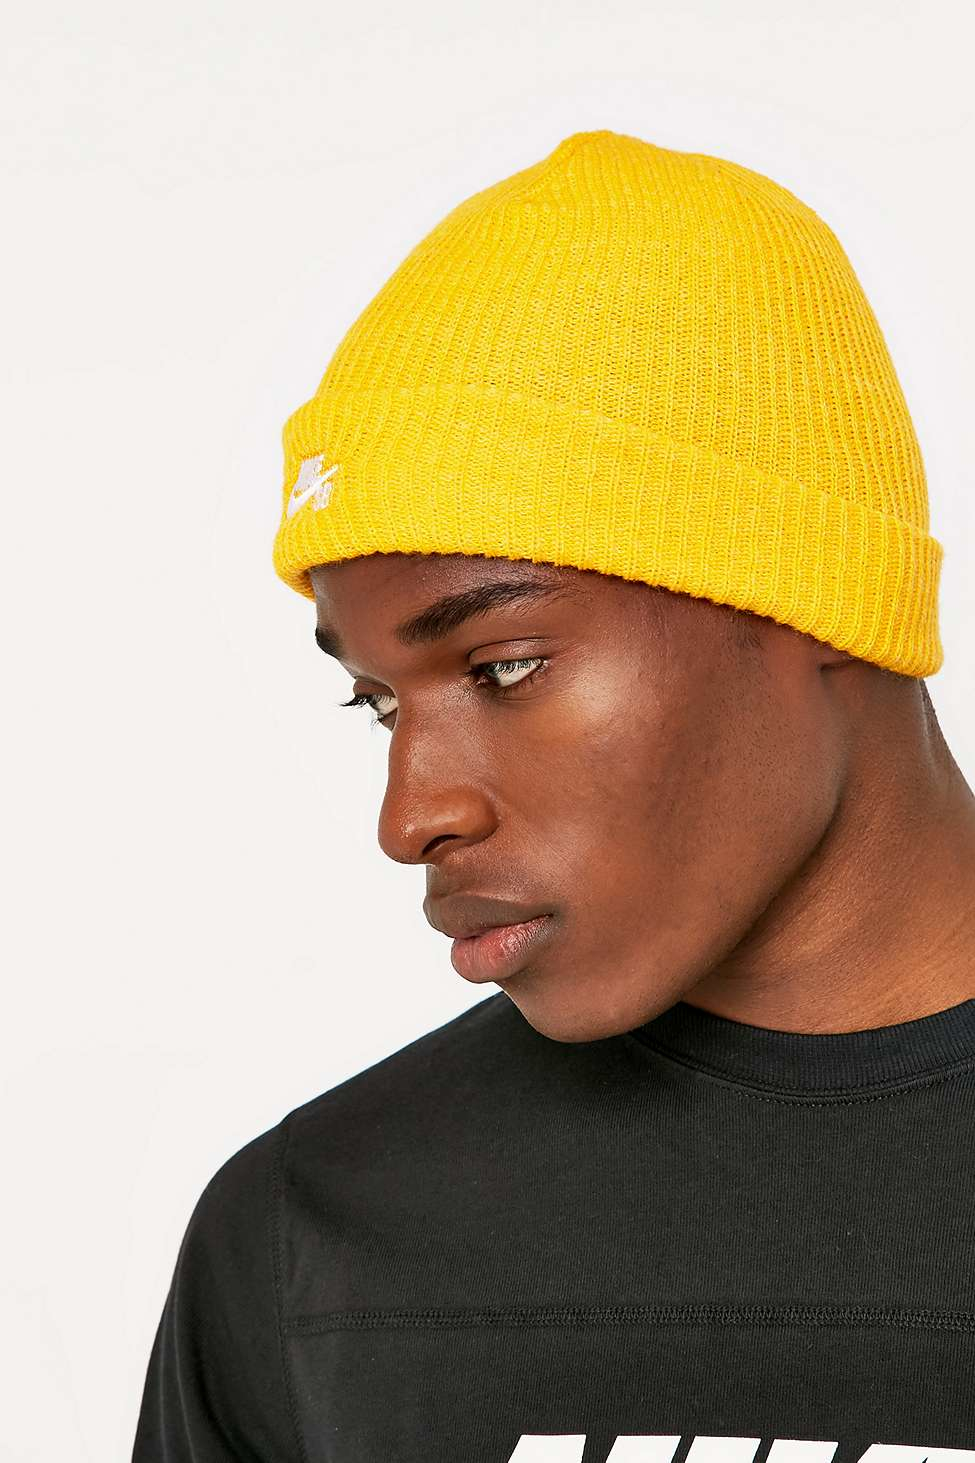 811e11ceb2847 6da62 086ff  coupon for lyst nike fisherman yellow beanie in yellow for men  c5d92 13a91